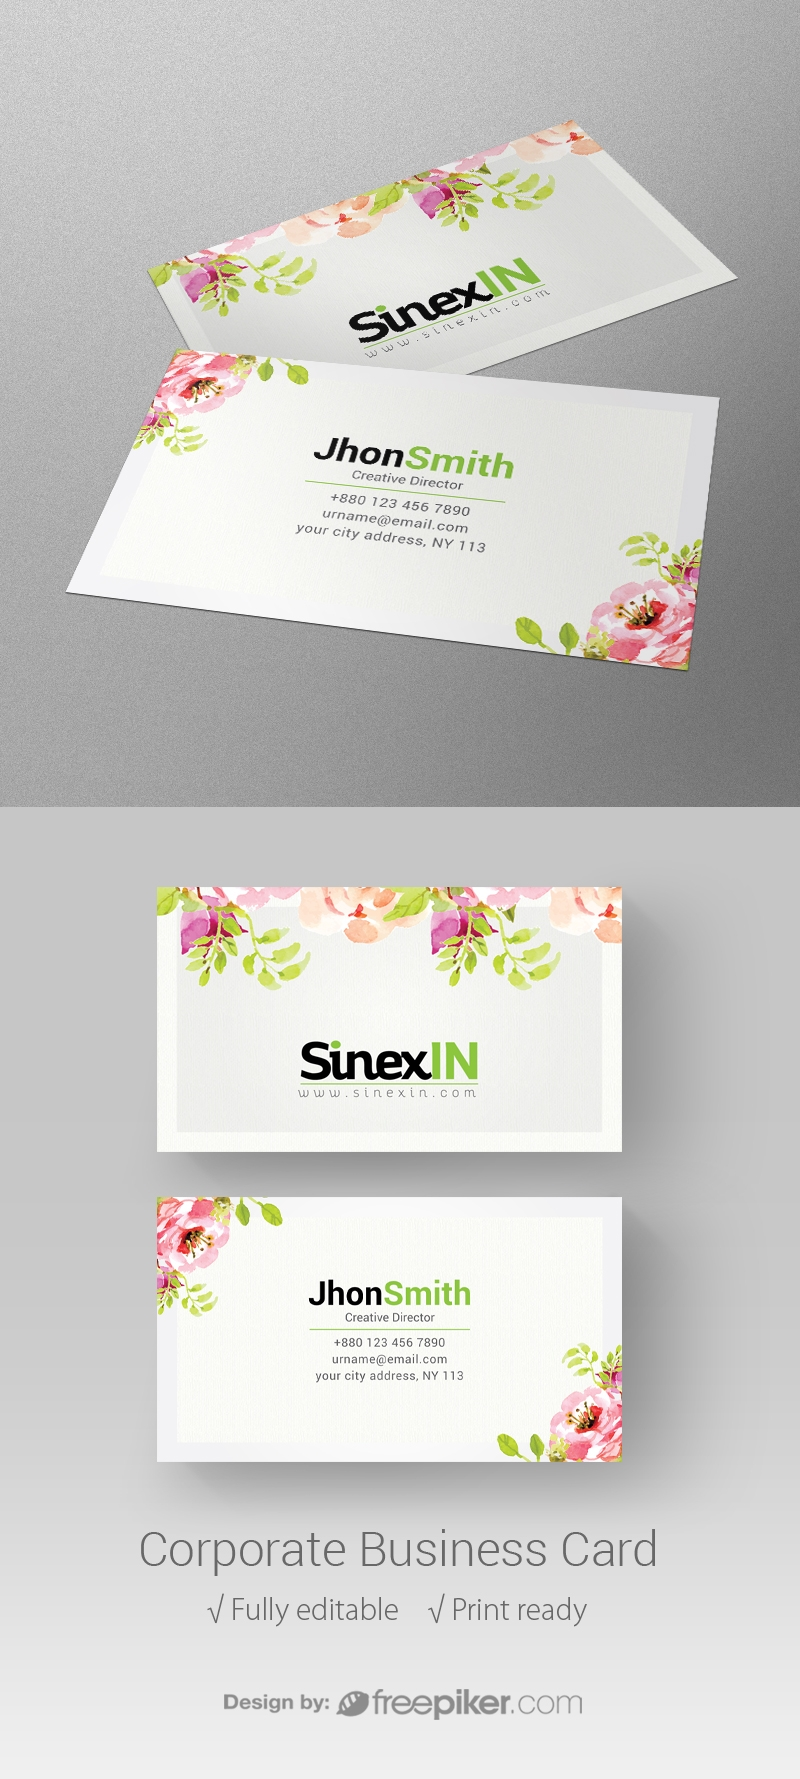 Freepiker | corporate floral business card